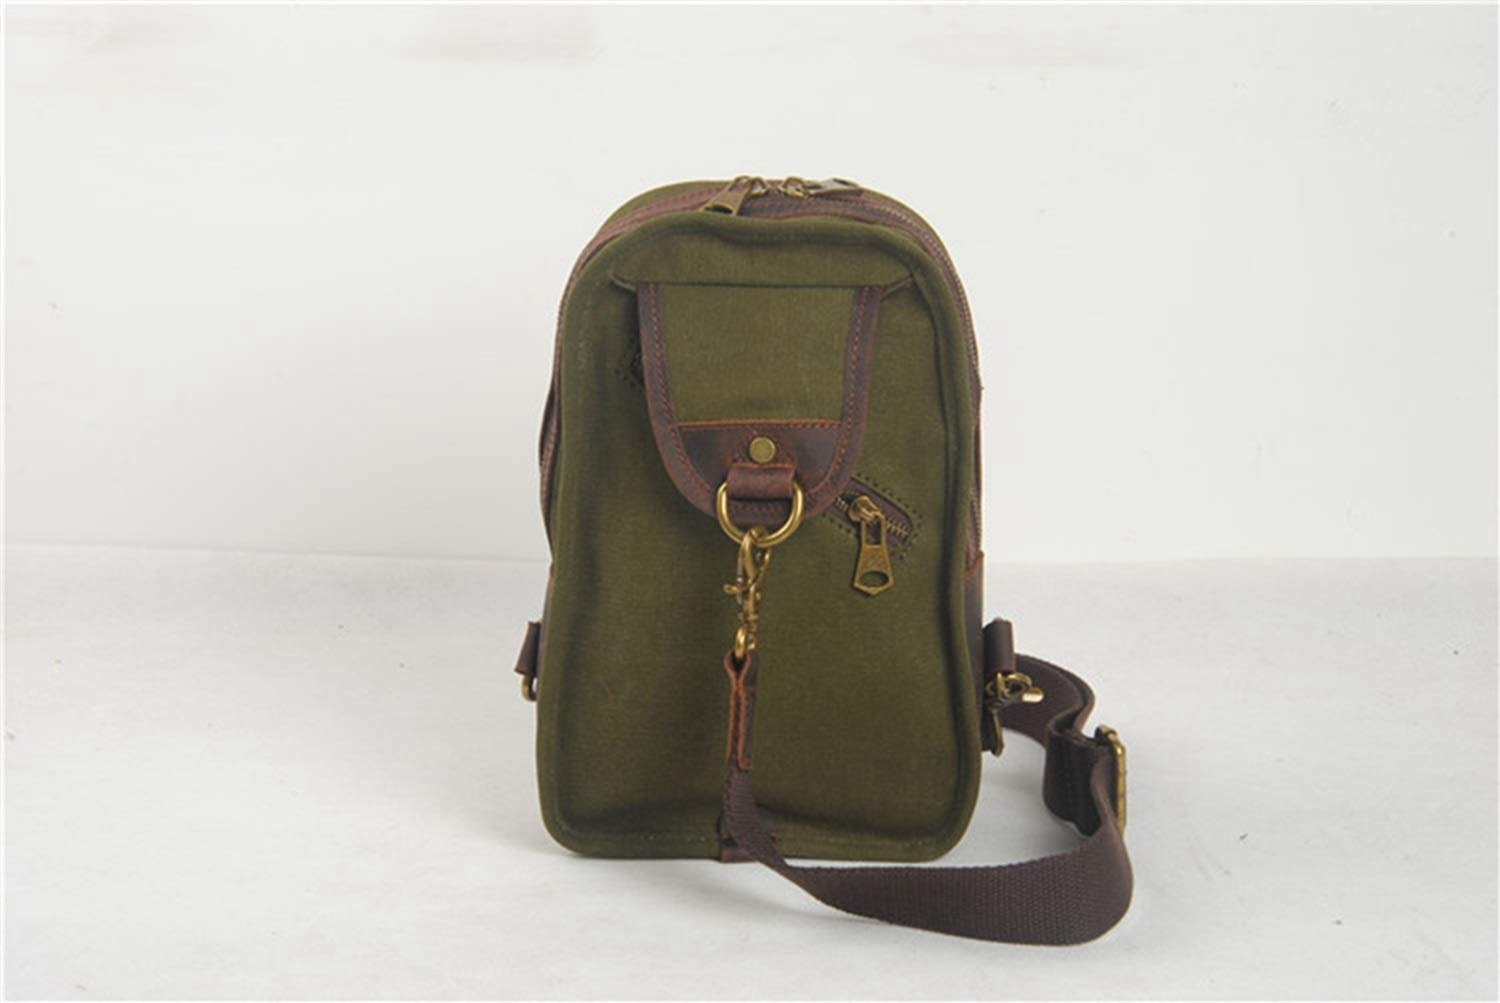 Color : ArmyGreen RABILTY Simple Retro Zipper Waterproof Canvas Chest Bag Shoulder Bag Messenger Bag Color ArmyGreen